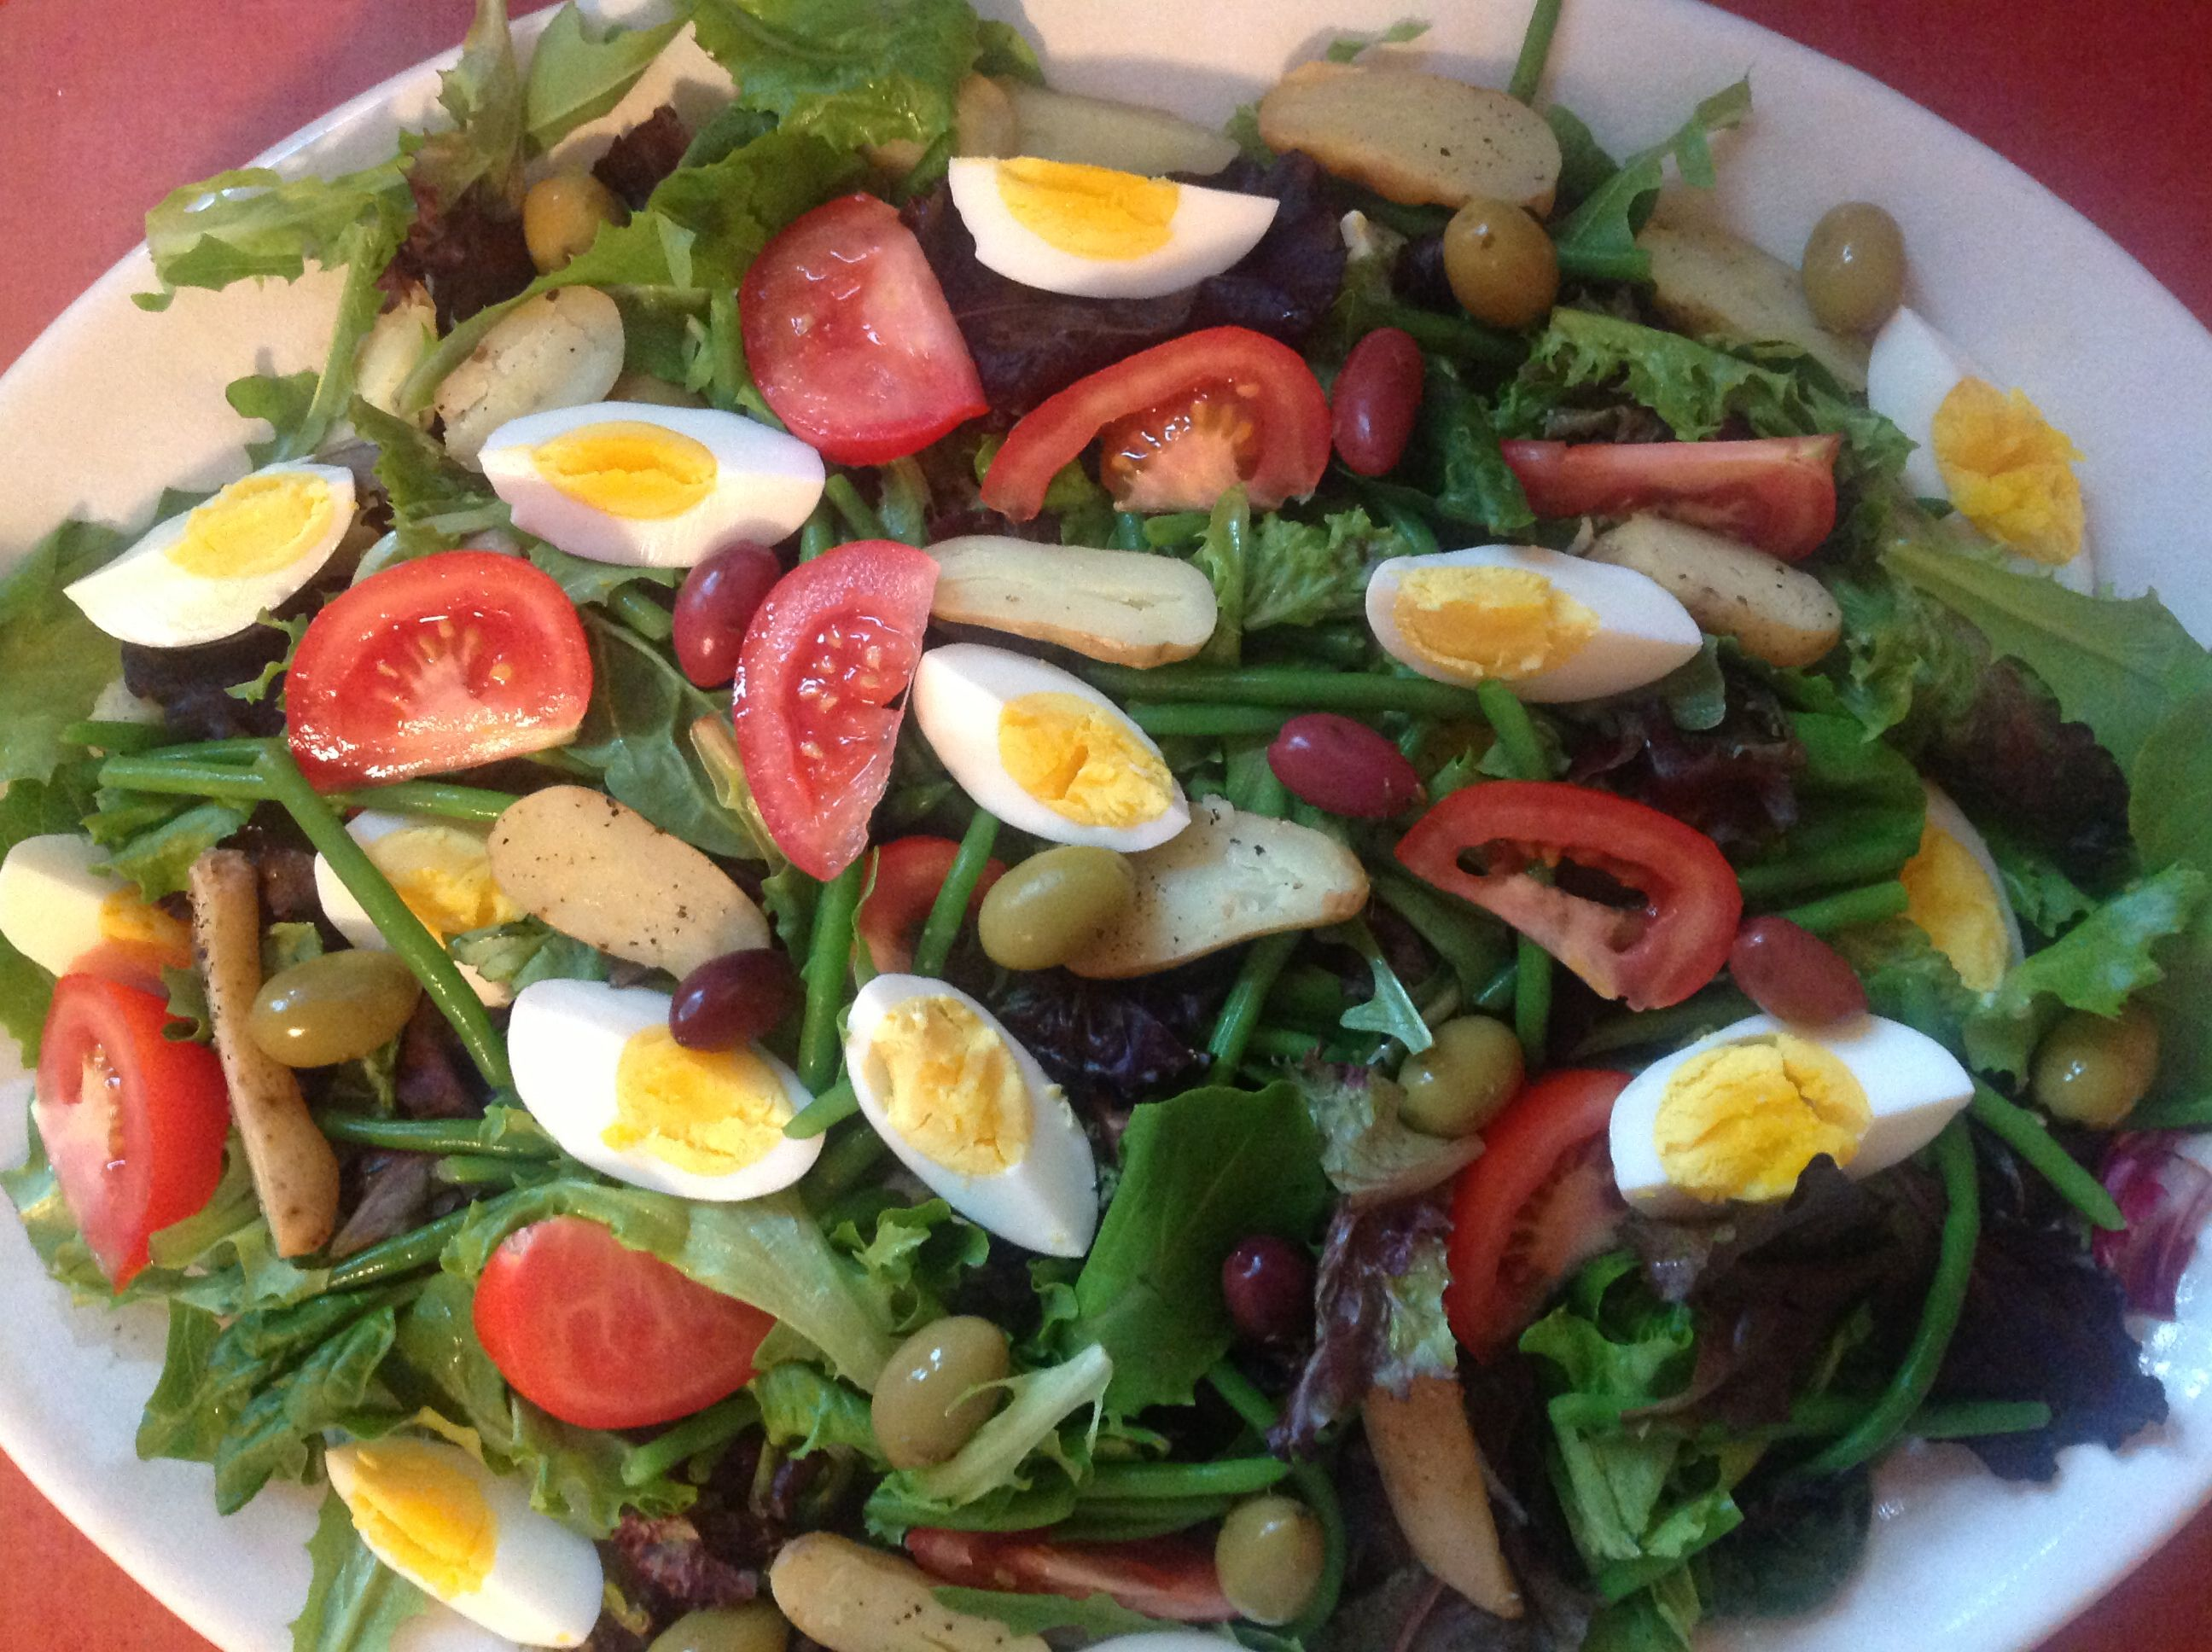 Salad Niçoise: fingerling potatoes, blanched haricot vert, hard boiled eggs, olives, mixed greens, tomatoes.